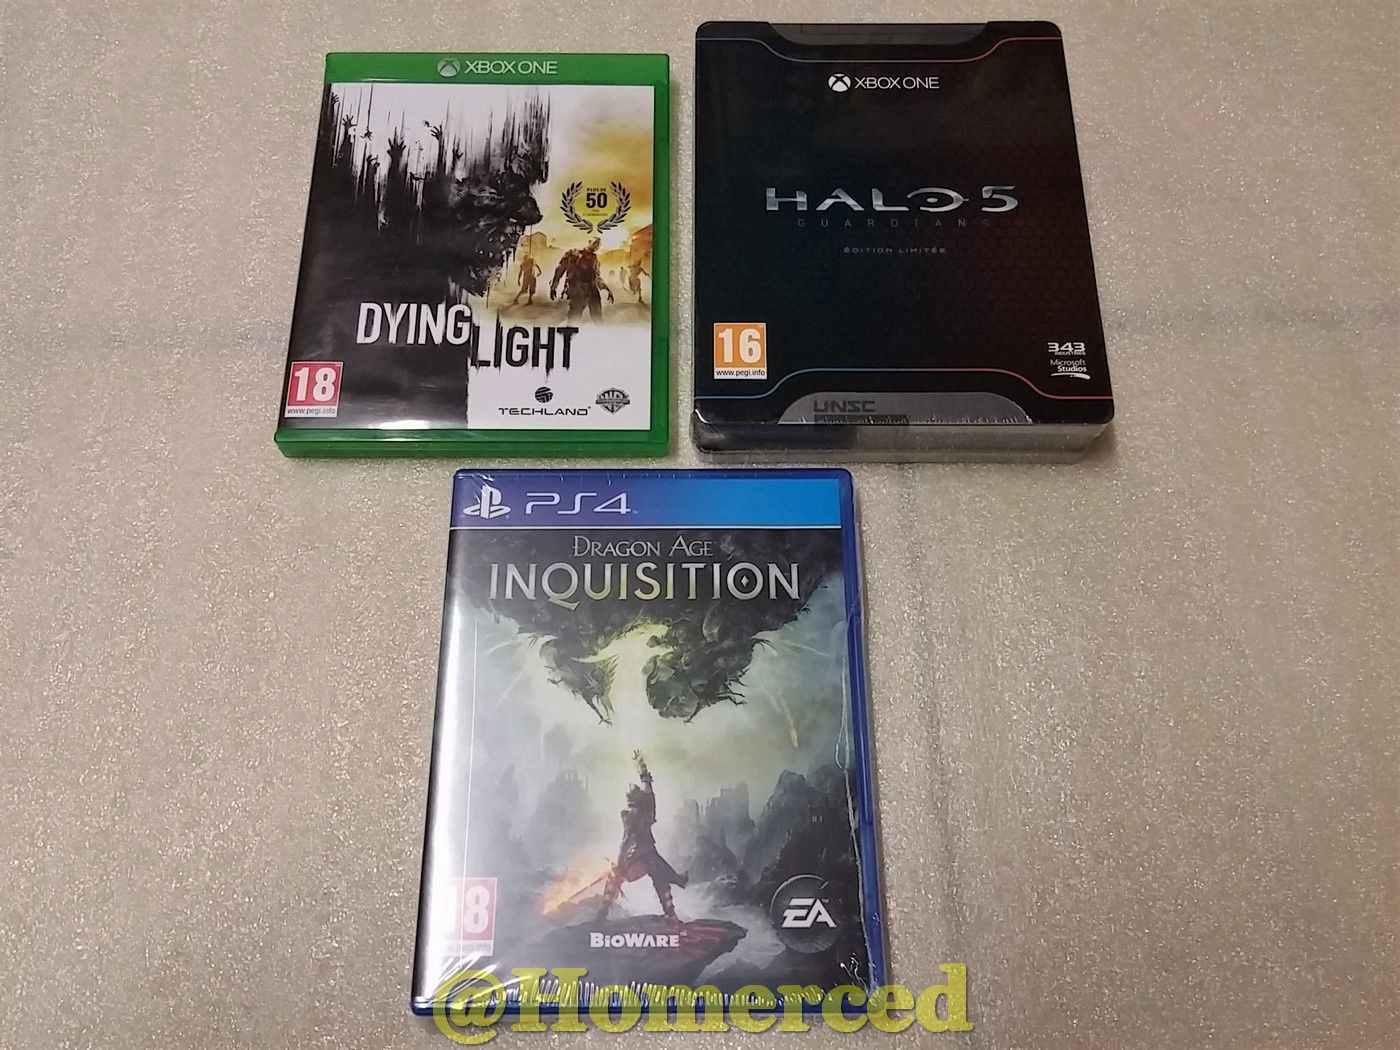 (Next Gen) XBOX ONE : Dying Light, Halo 5 Guardians édition limitée et PS4 : Dragon Age Inquisition